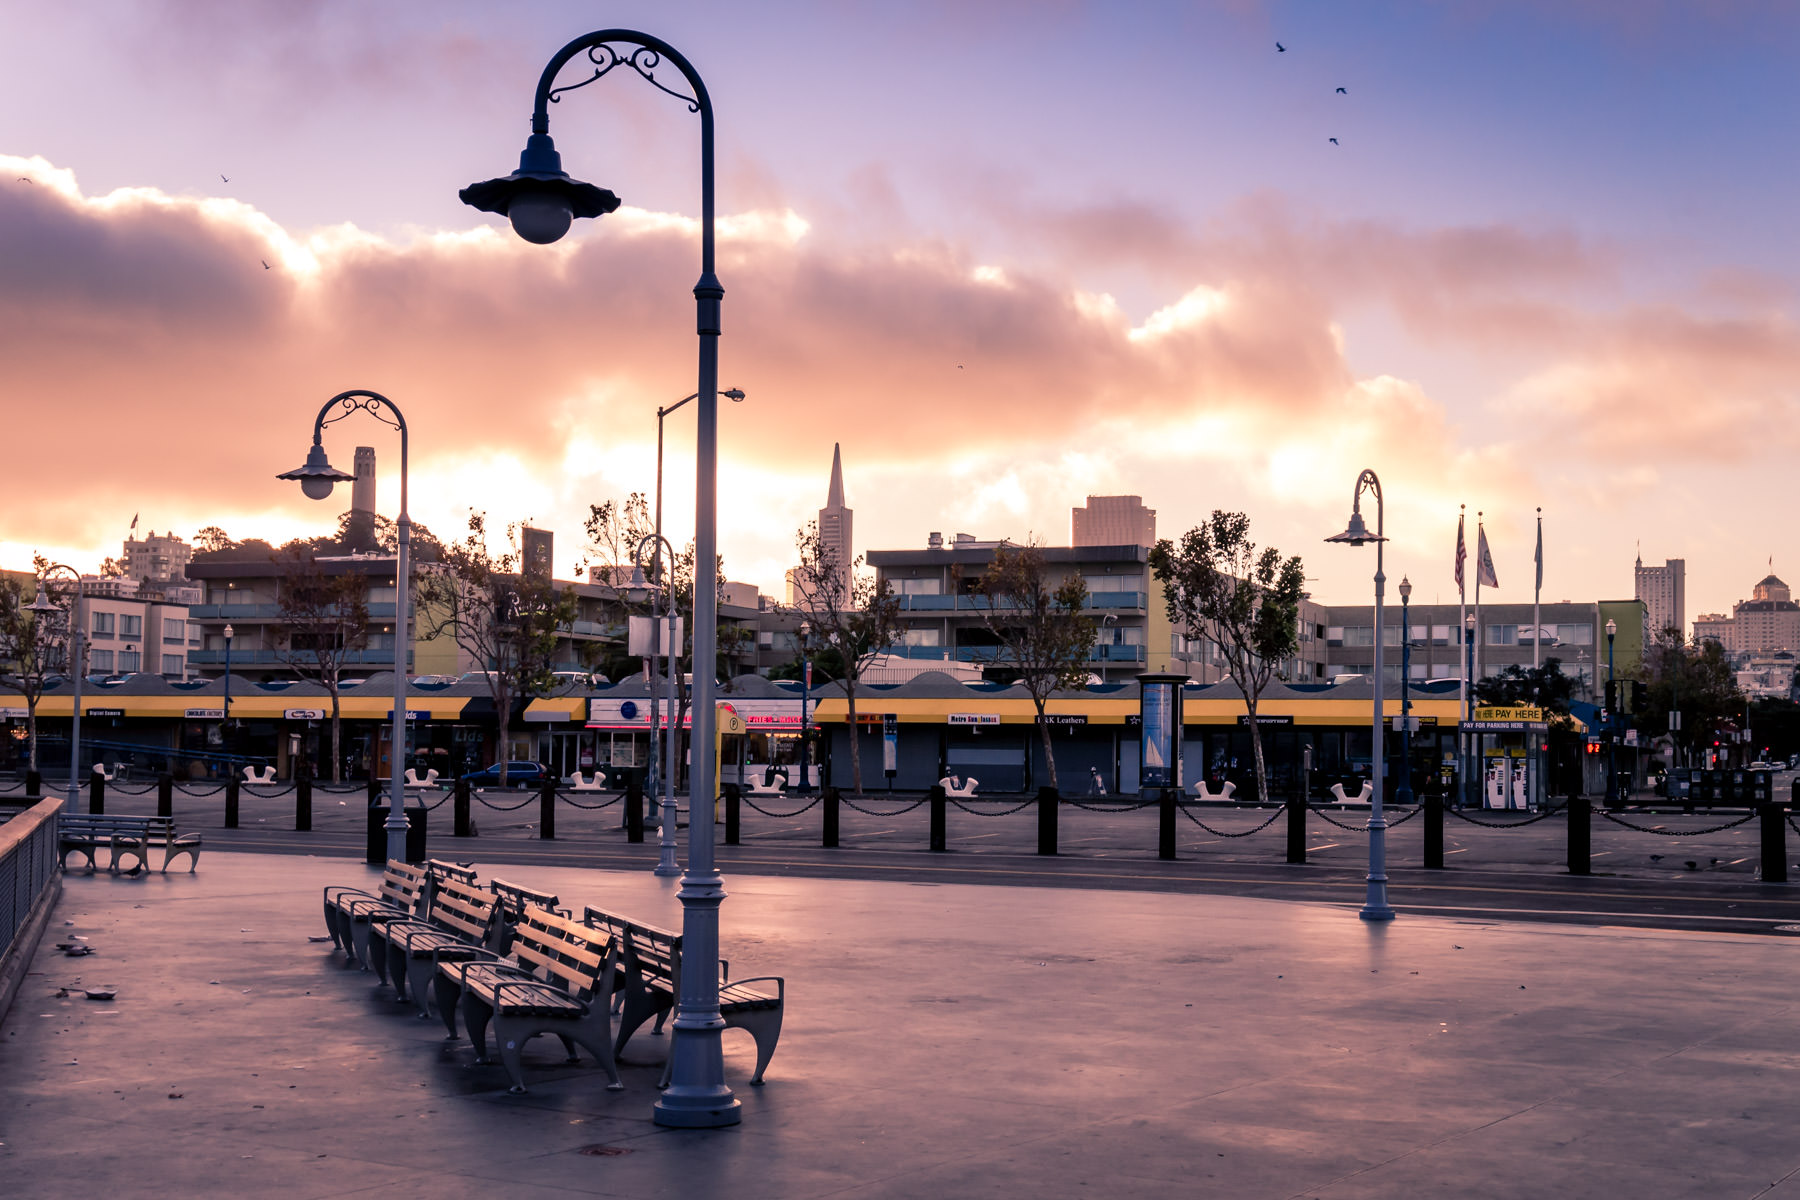 The sun rises over San Francisco, illuminating the empty streets of Fisherman's Wharf and the adjacent North Beach neighborhood.